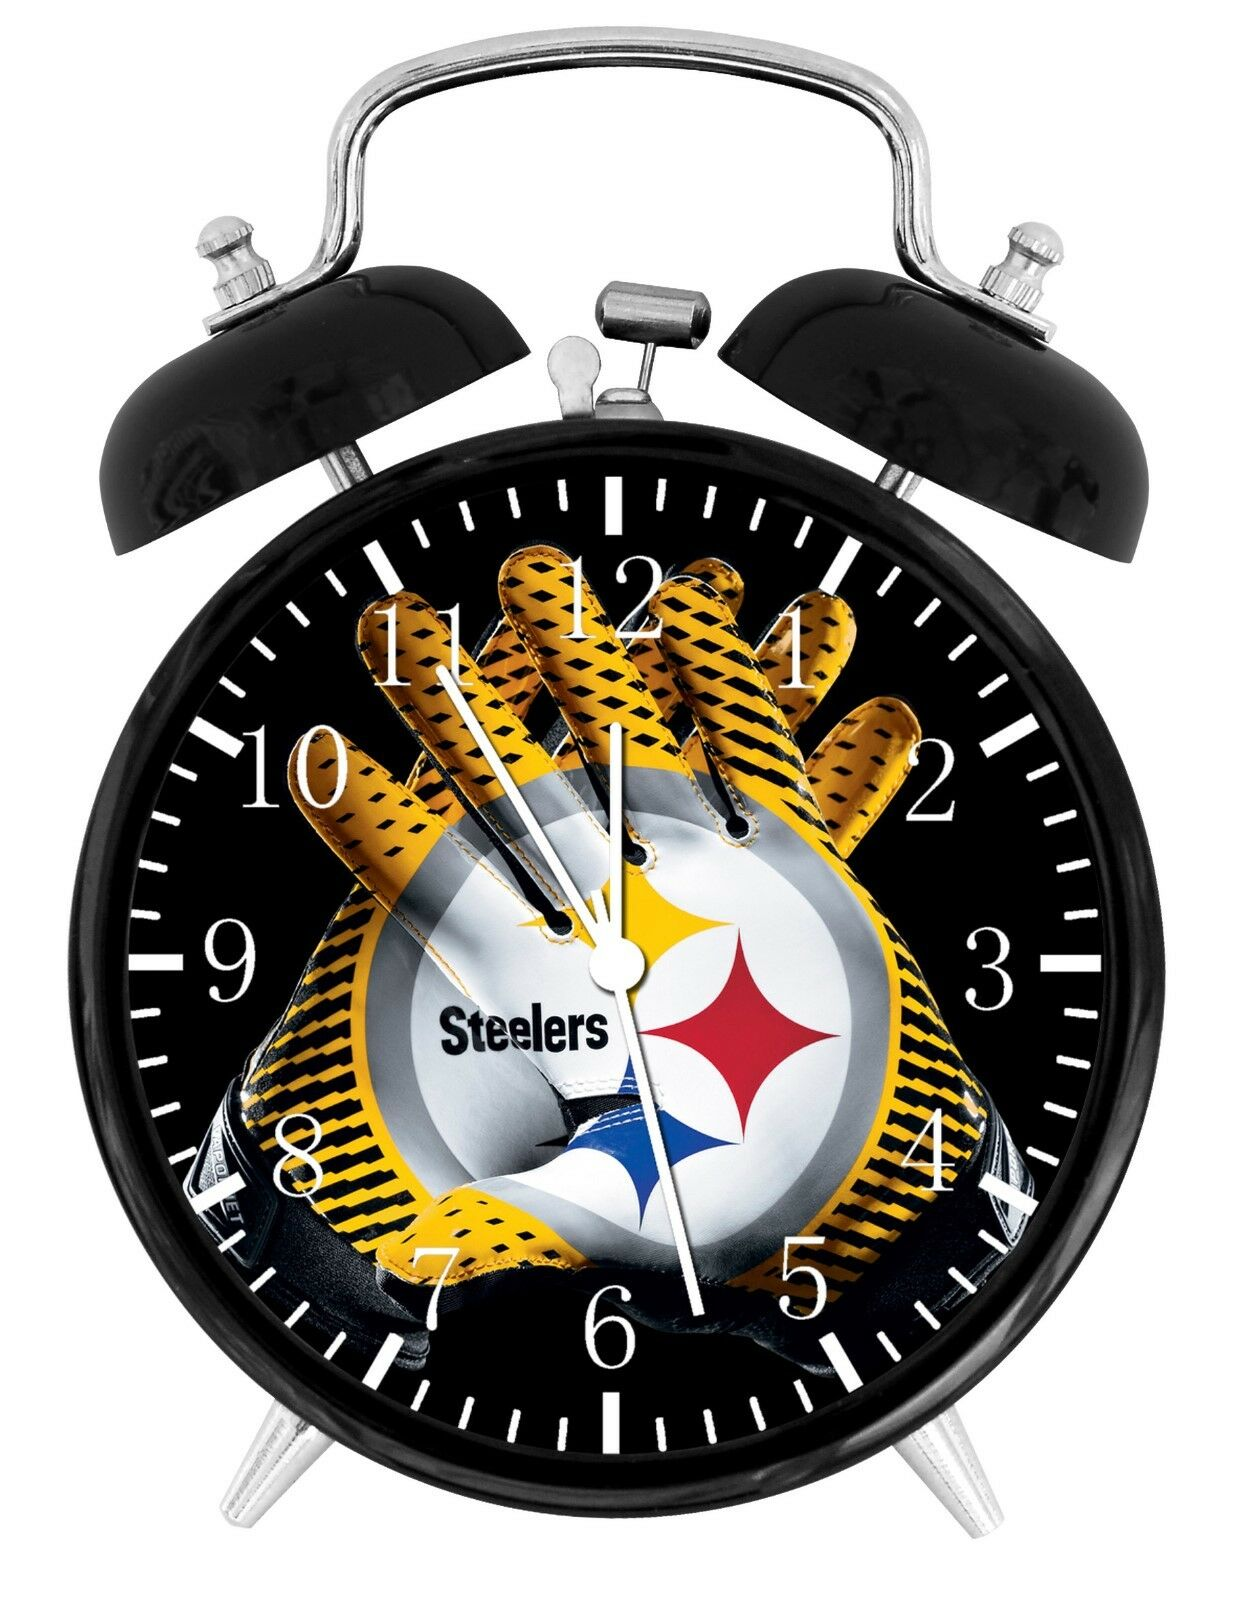 "Pittsburgh Steelers Alarm Desk Clock 3.75"" Home or Office Decor F07 Nice Gift"